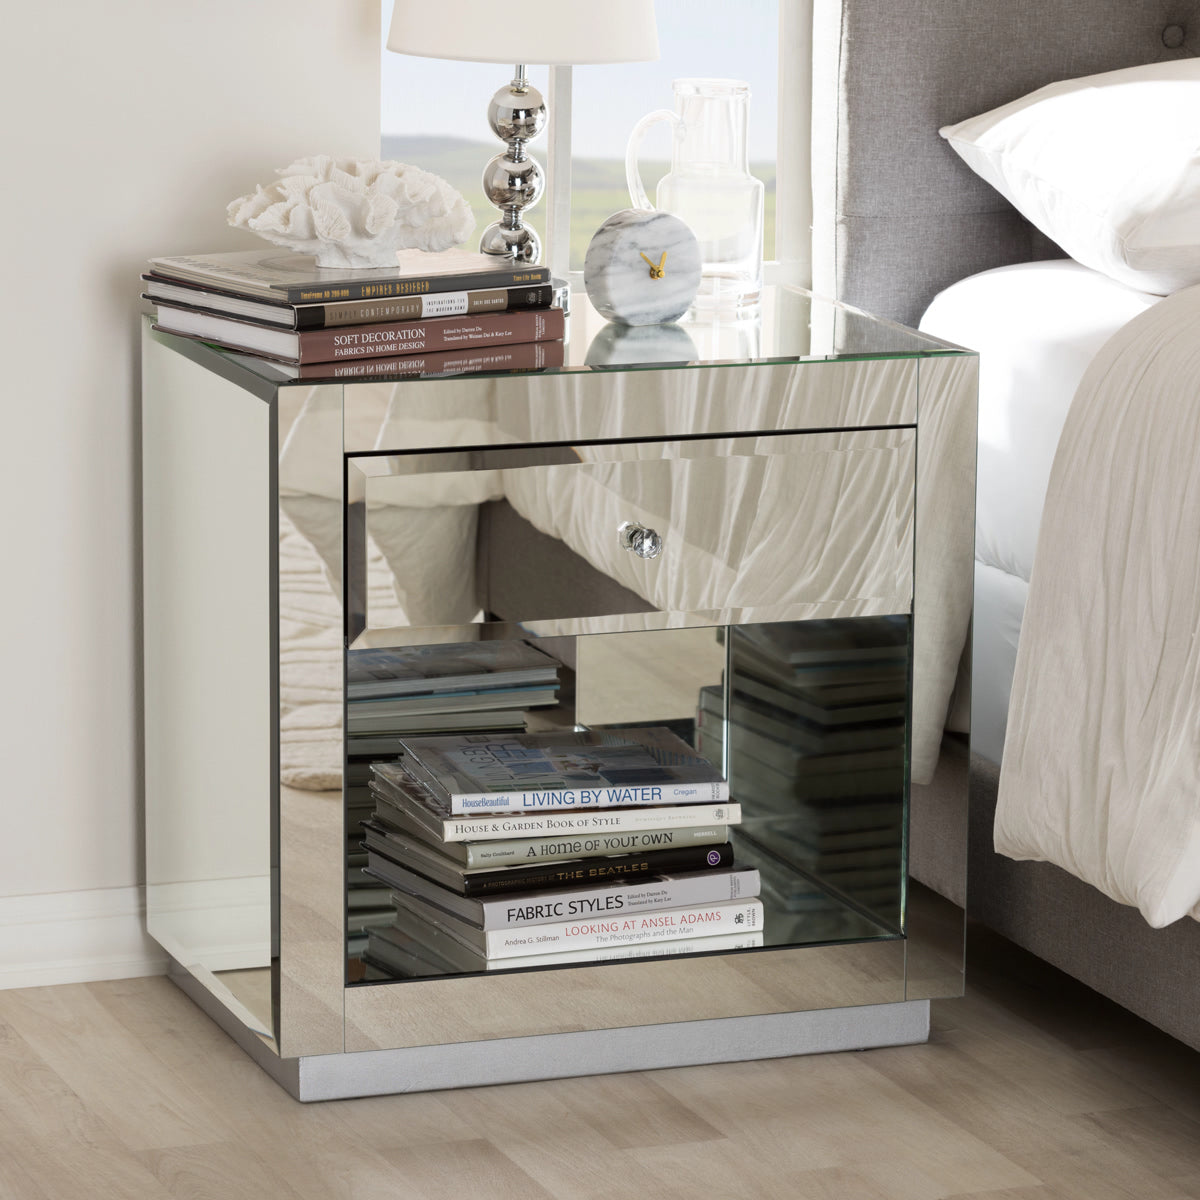 Baxton Studio Melanie Hollywood Regency Glamour Style Mirrored 1-Drawer 1-Shelf Nightstand (Set of 2) Baxton Studio-nightstands-Minimal And Modern - 1